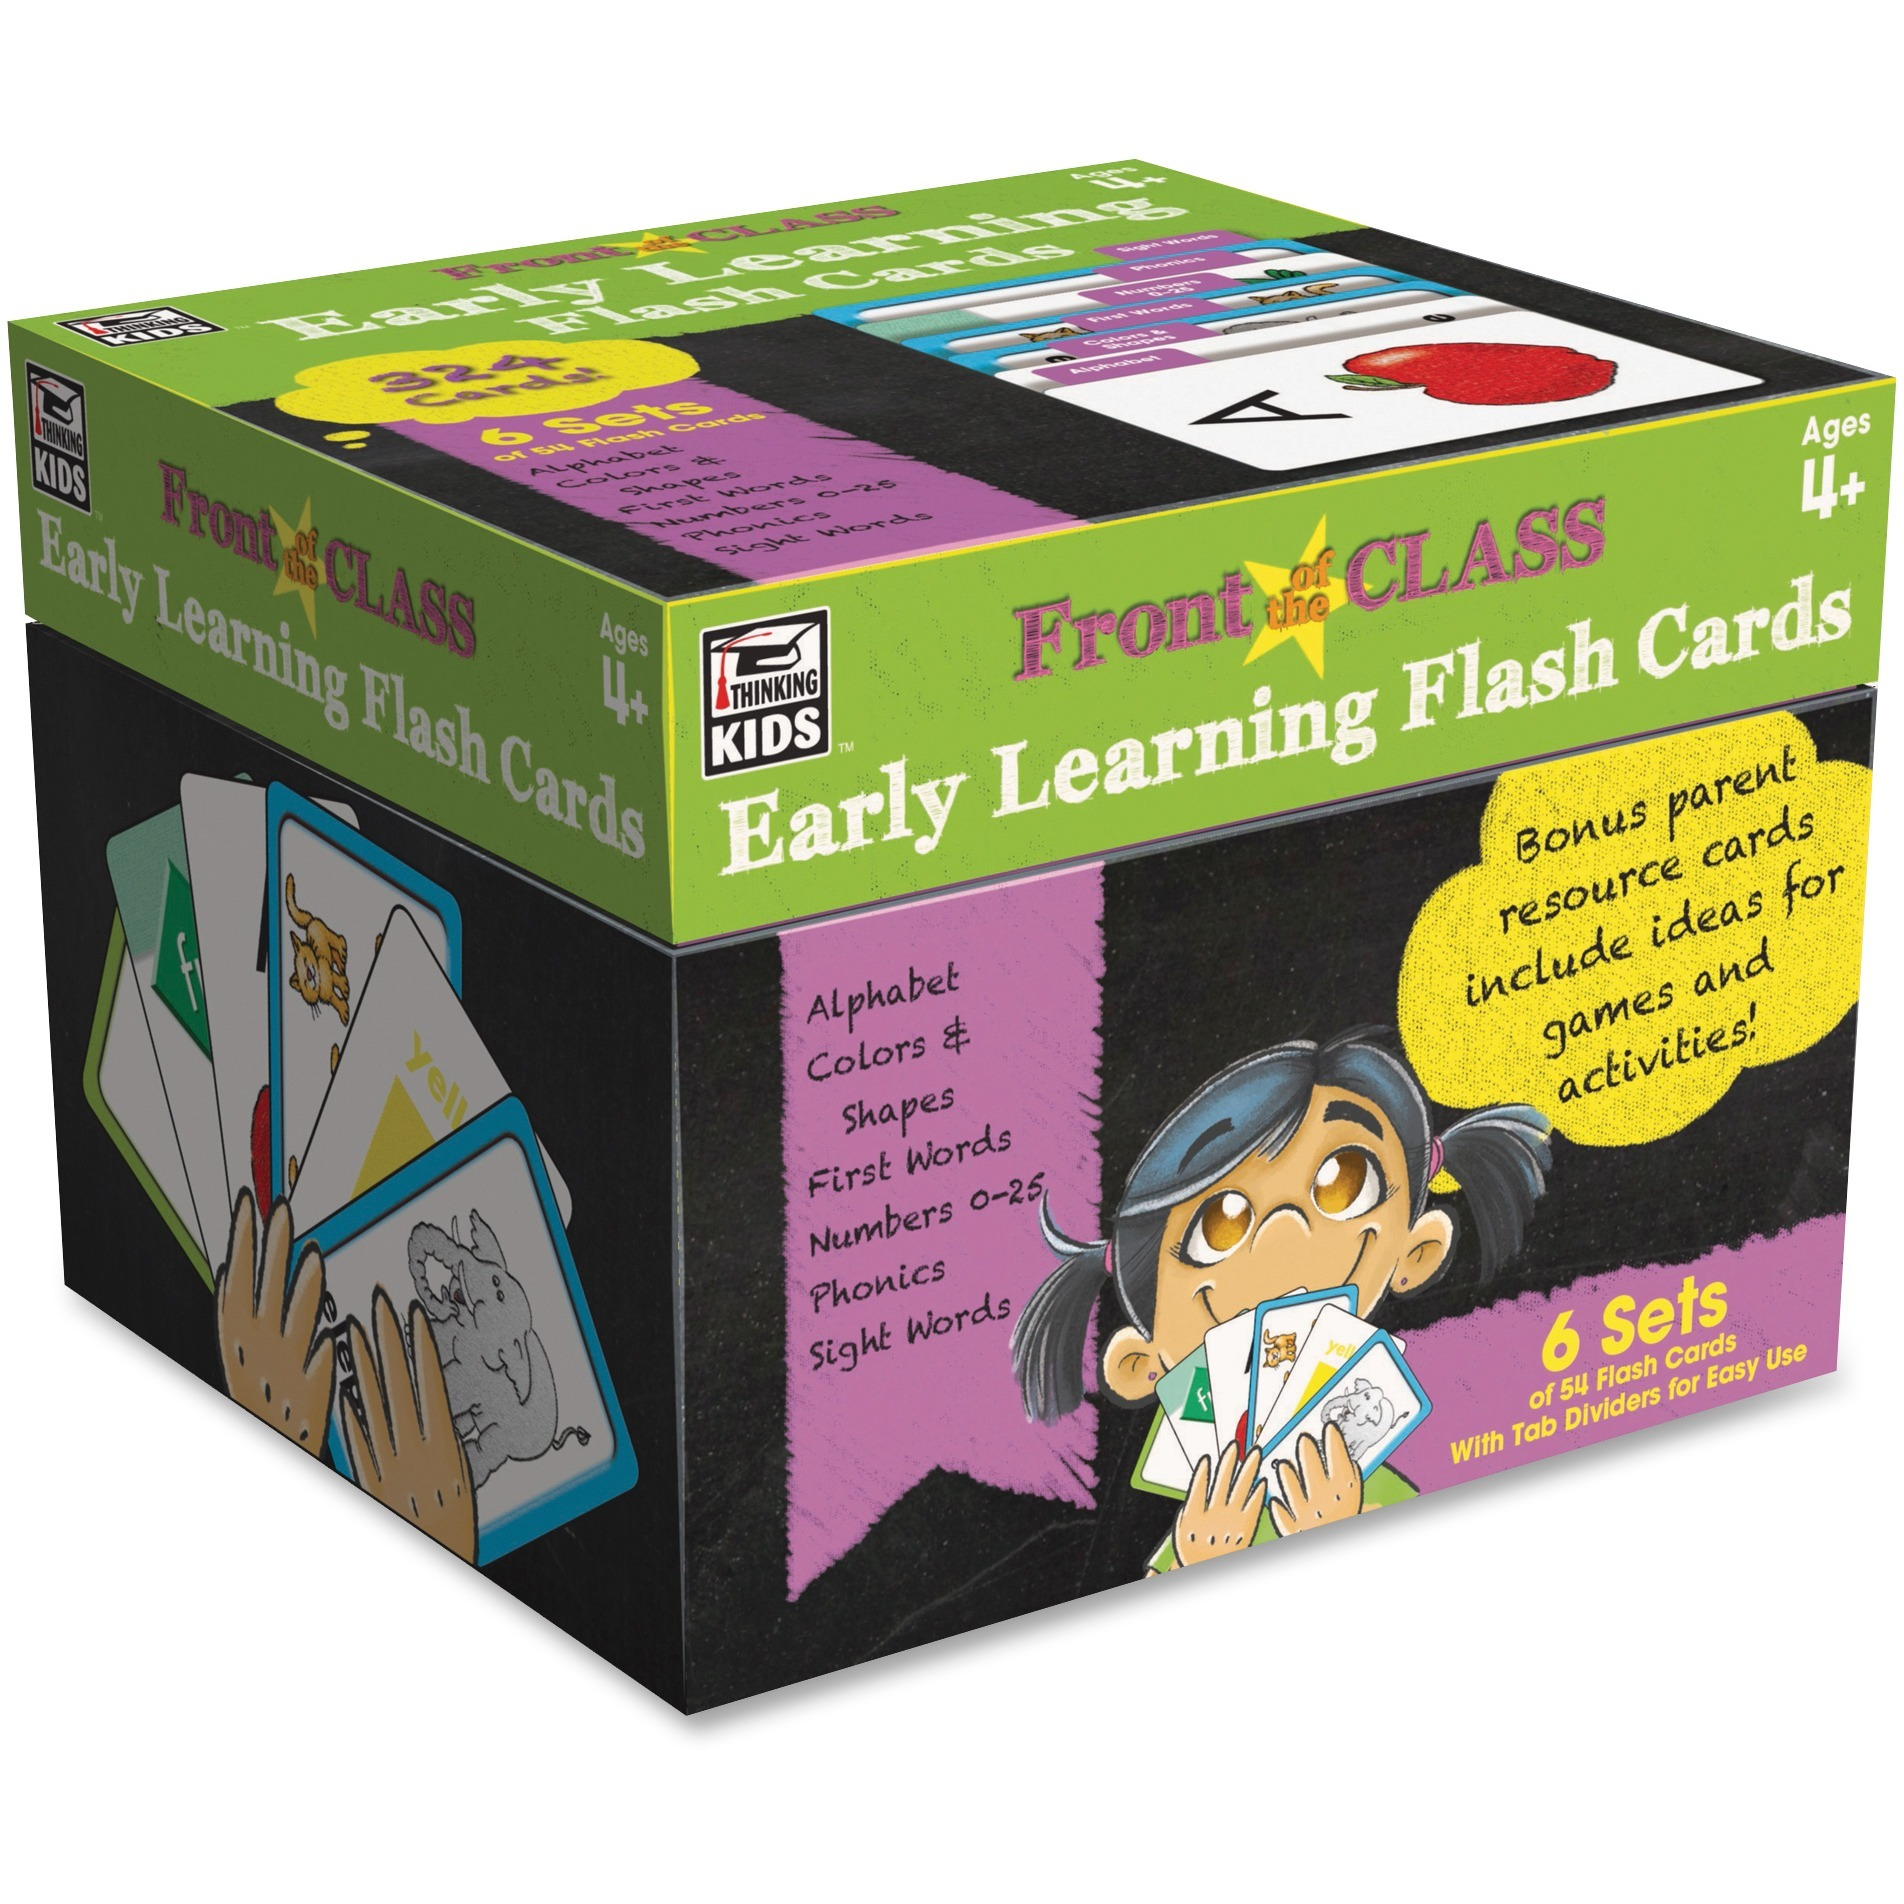 Carson Dellosa Cdp Early Learning Flash Cards 1